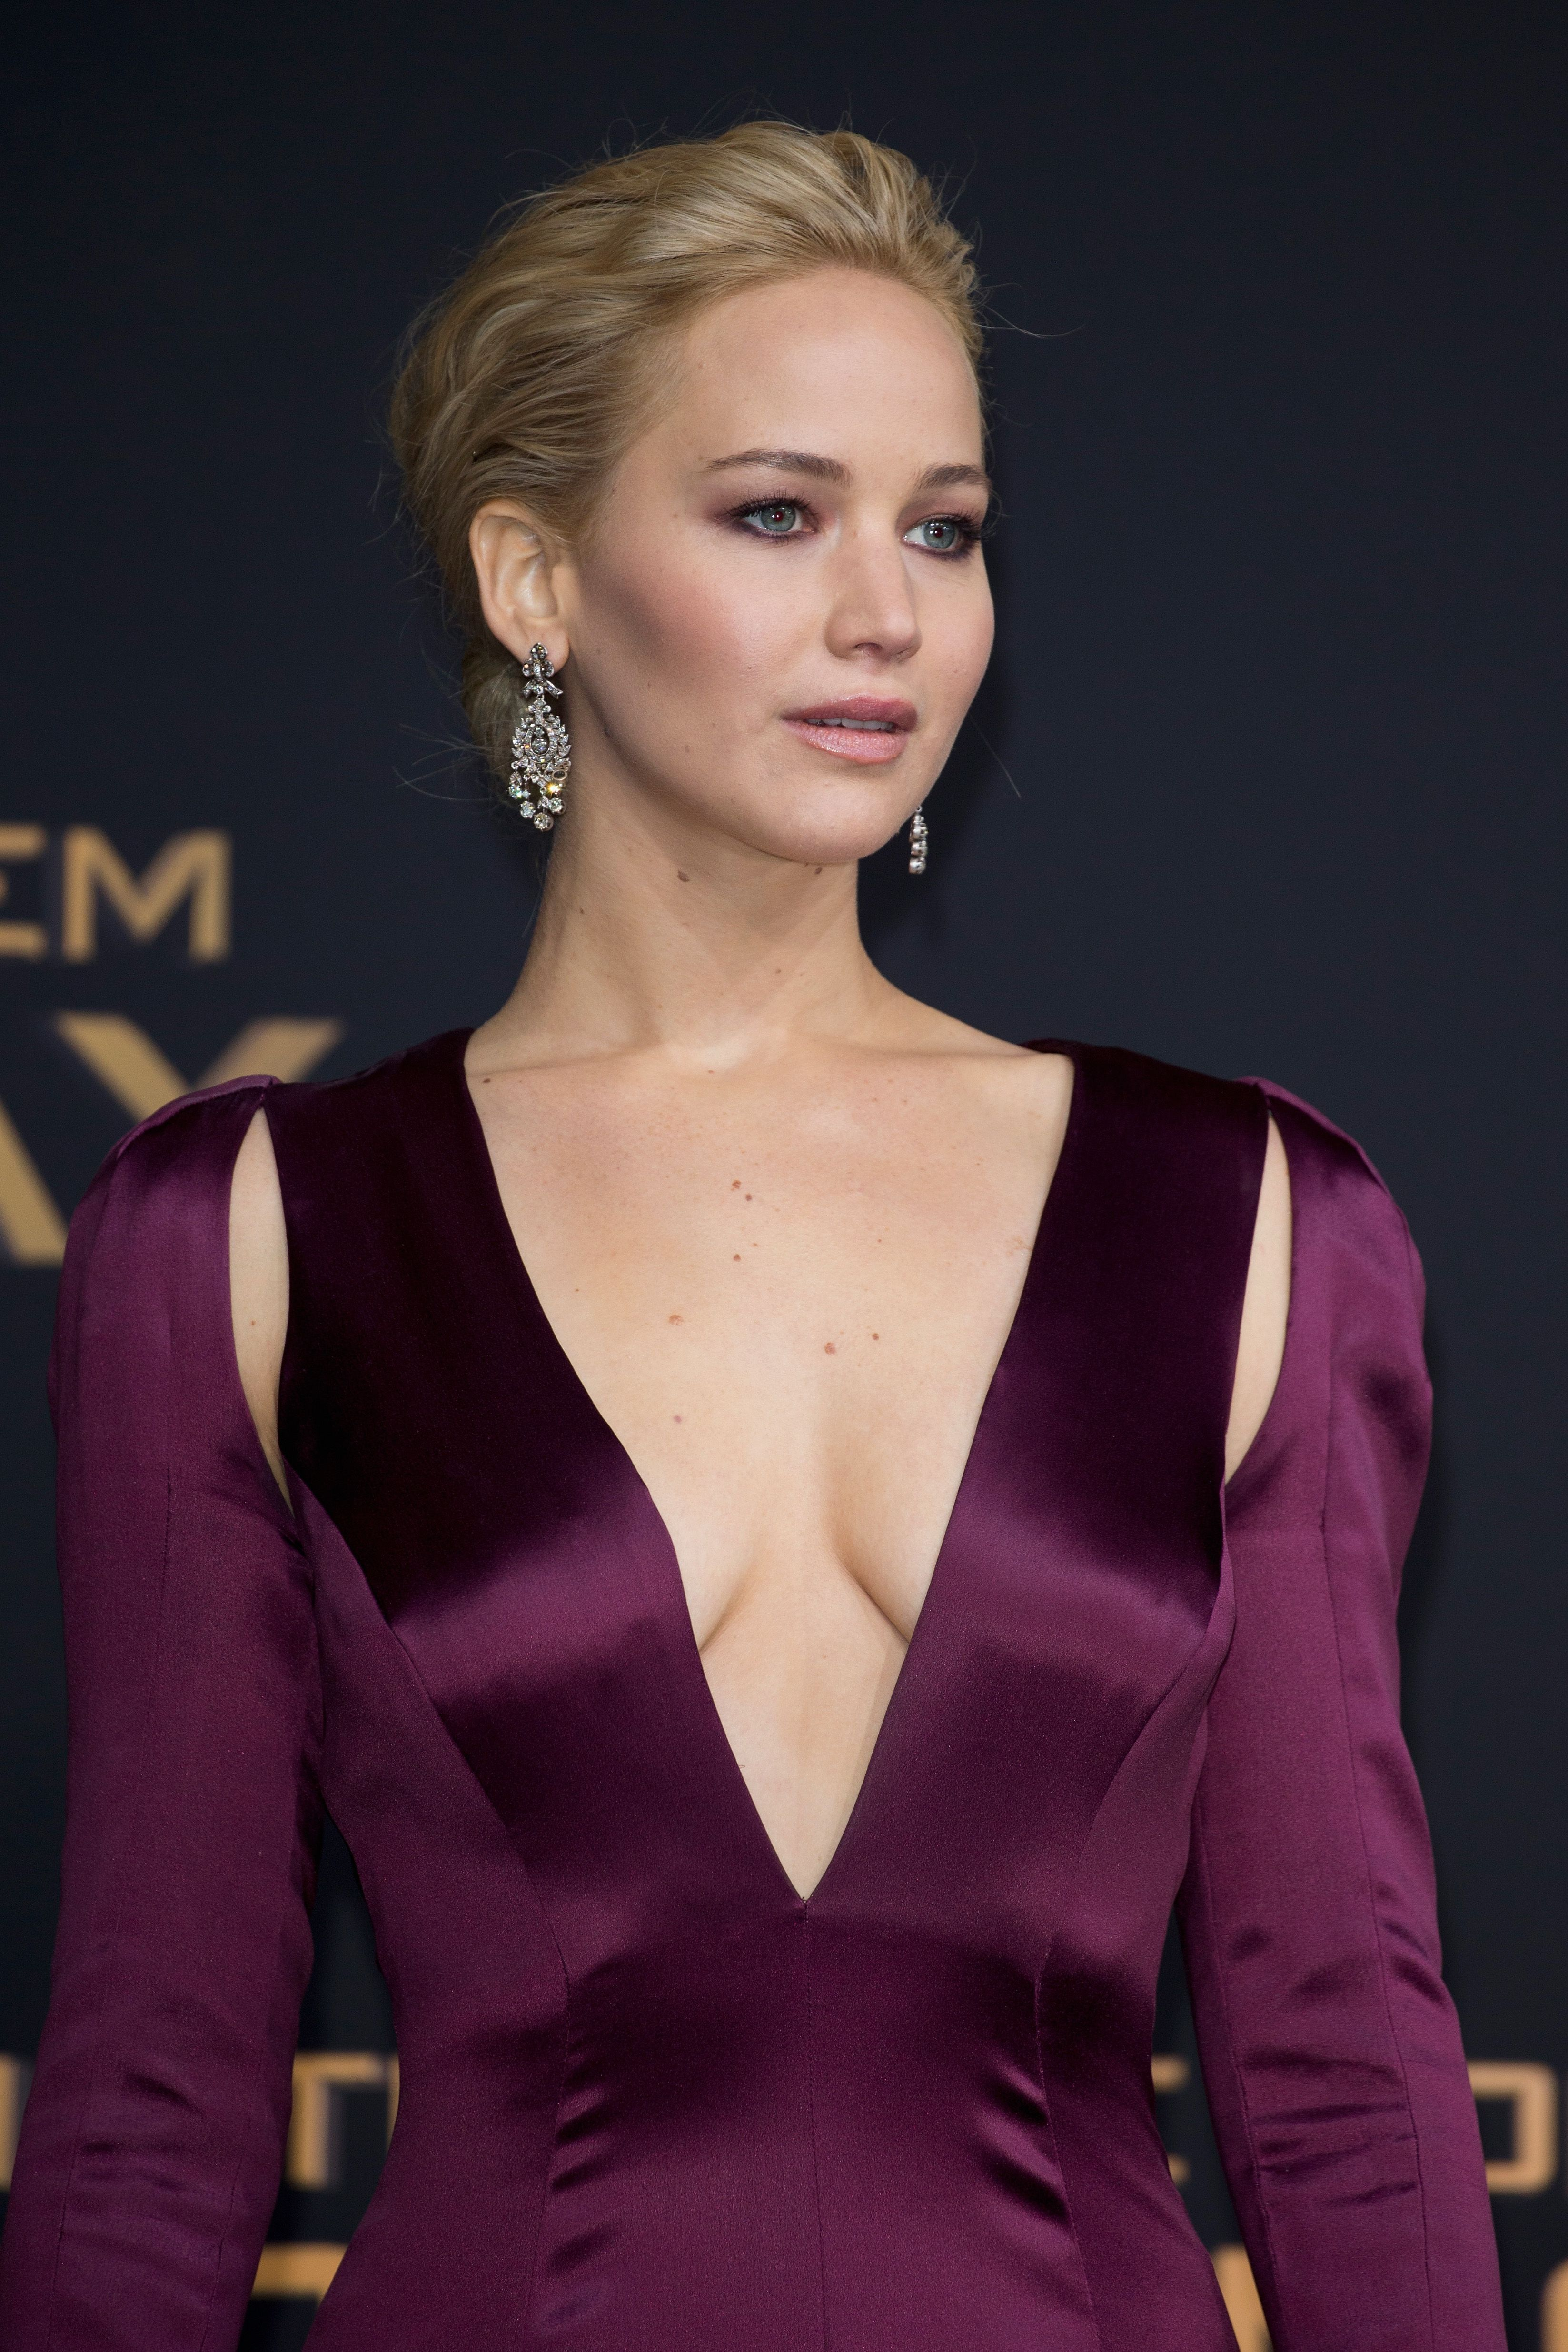 Cleavage JLaw nude photos 2019